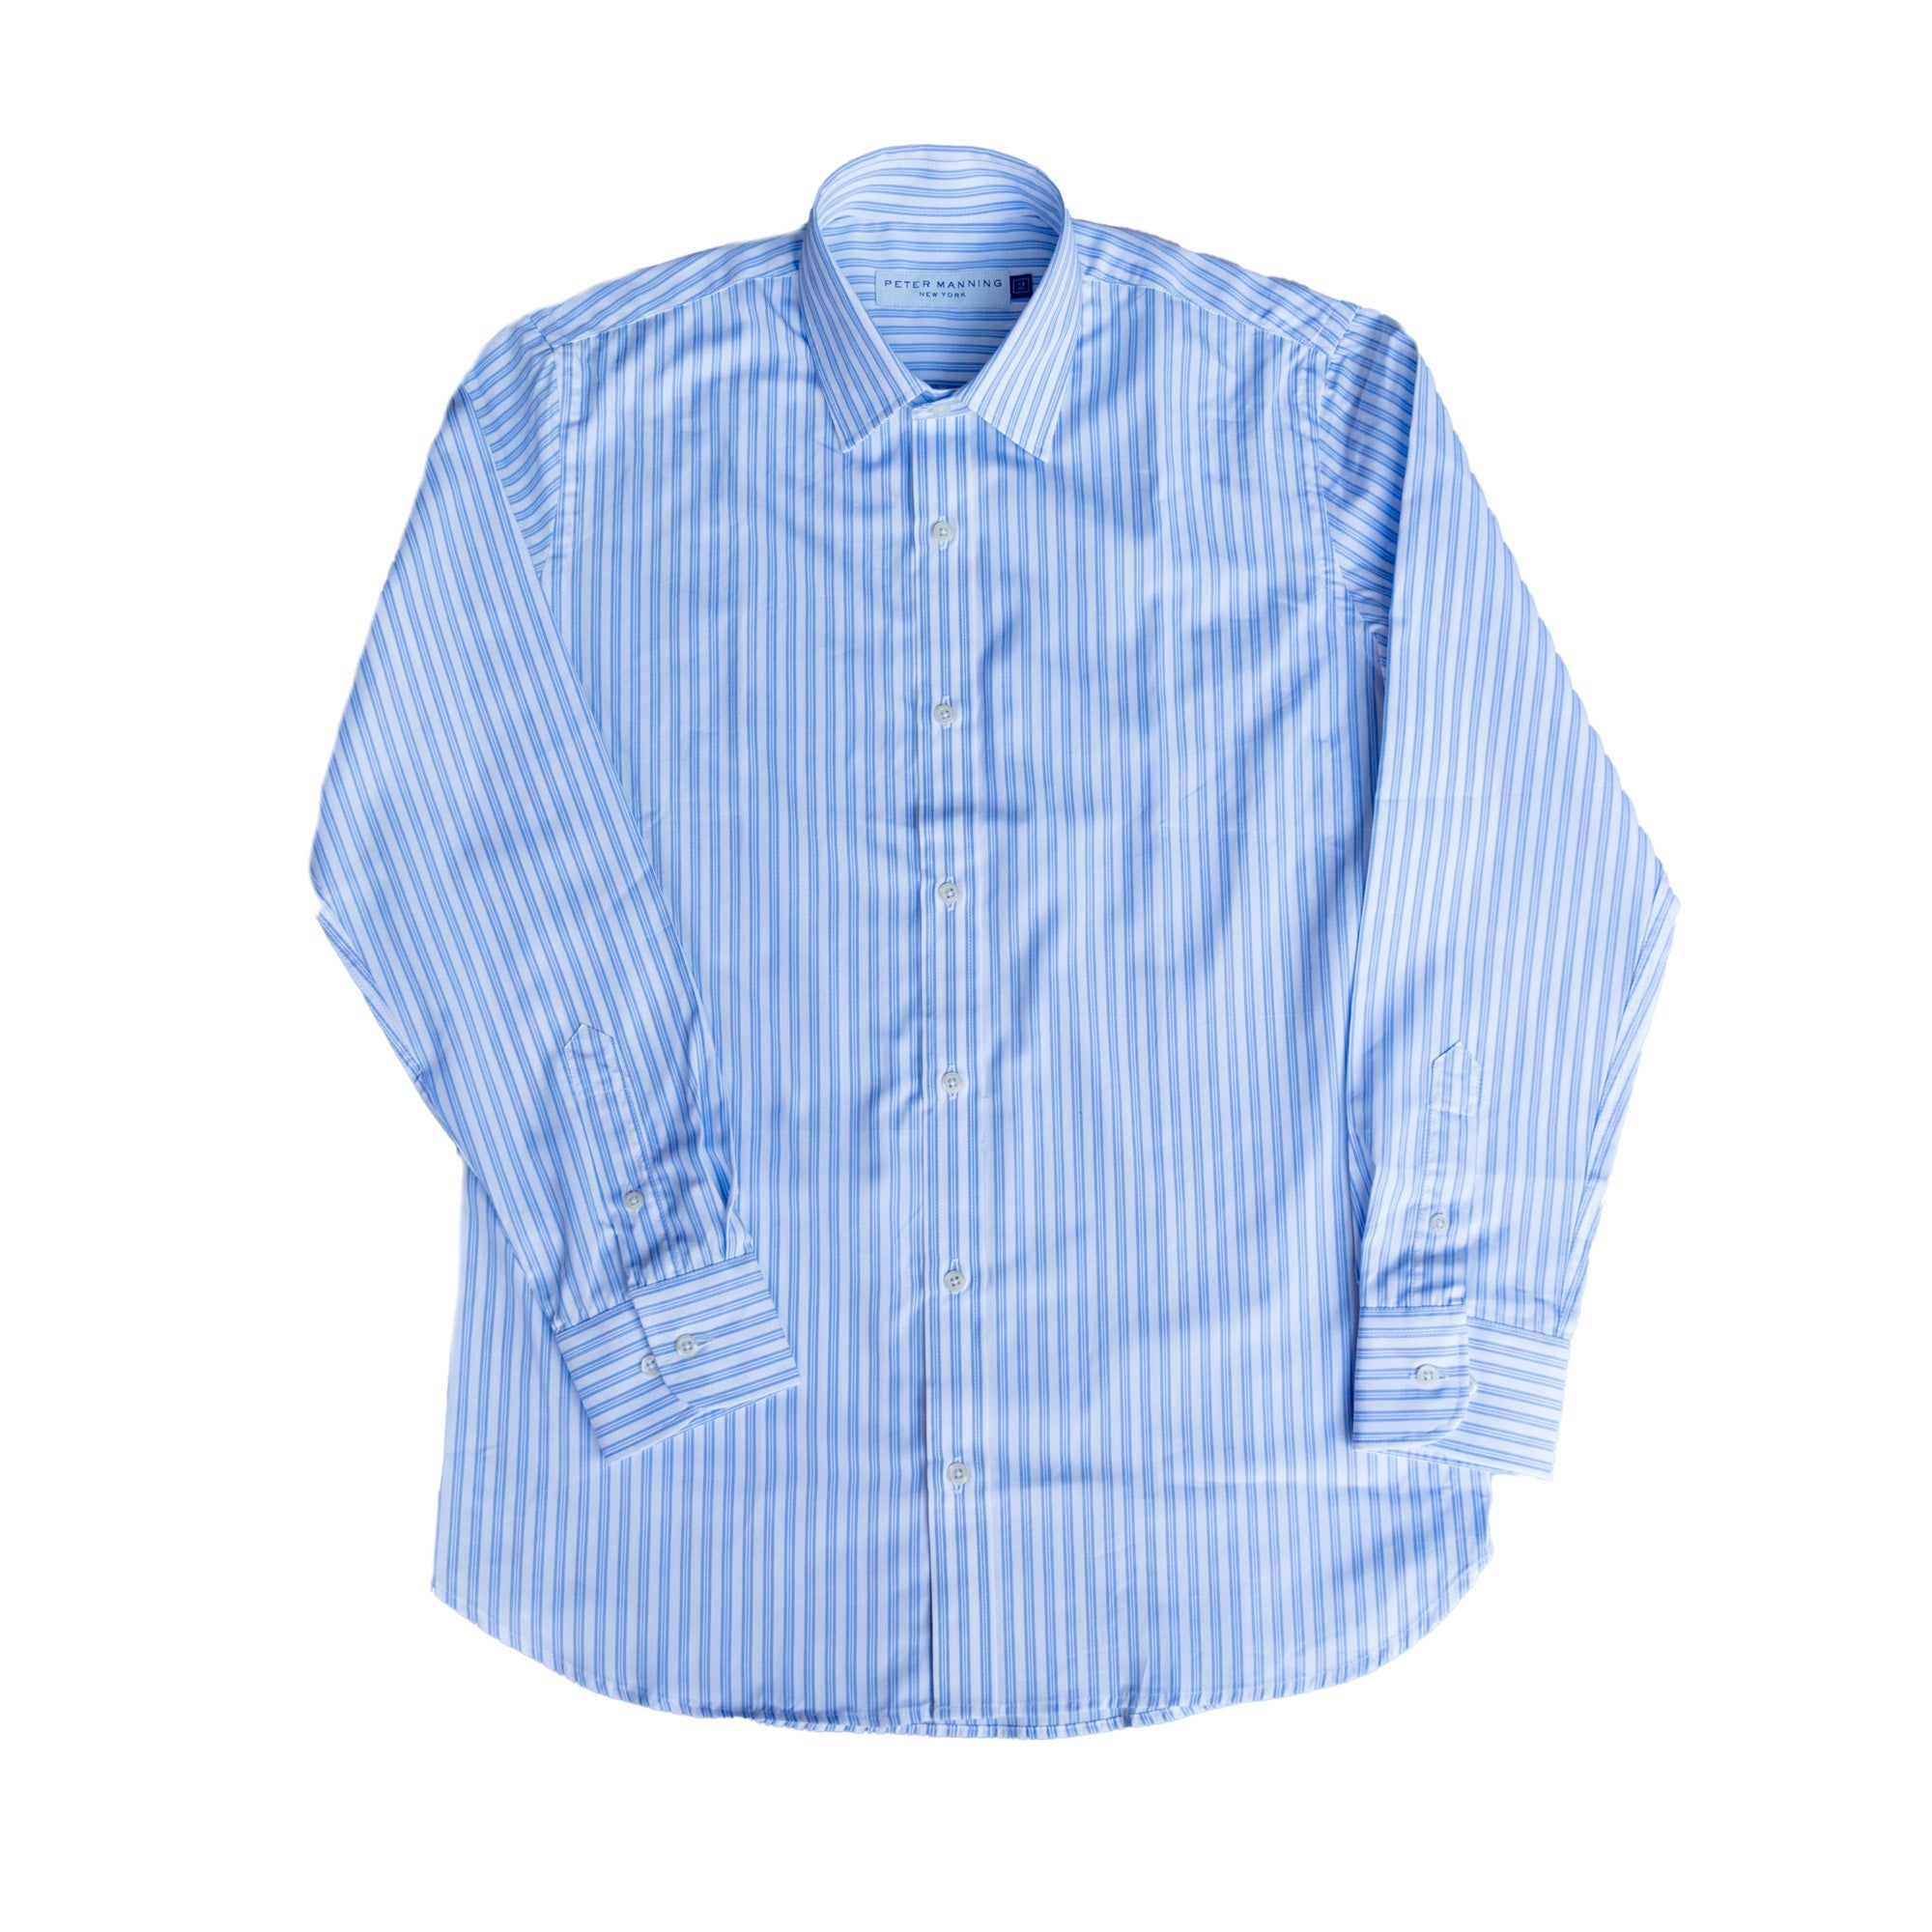 Premium Dress Shirt Standard Fit - Blue White Stripe